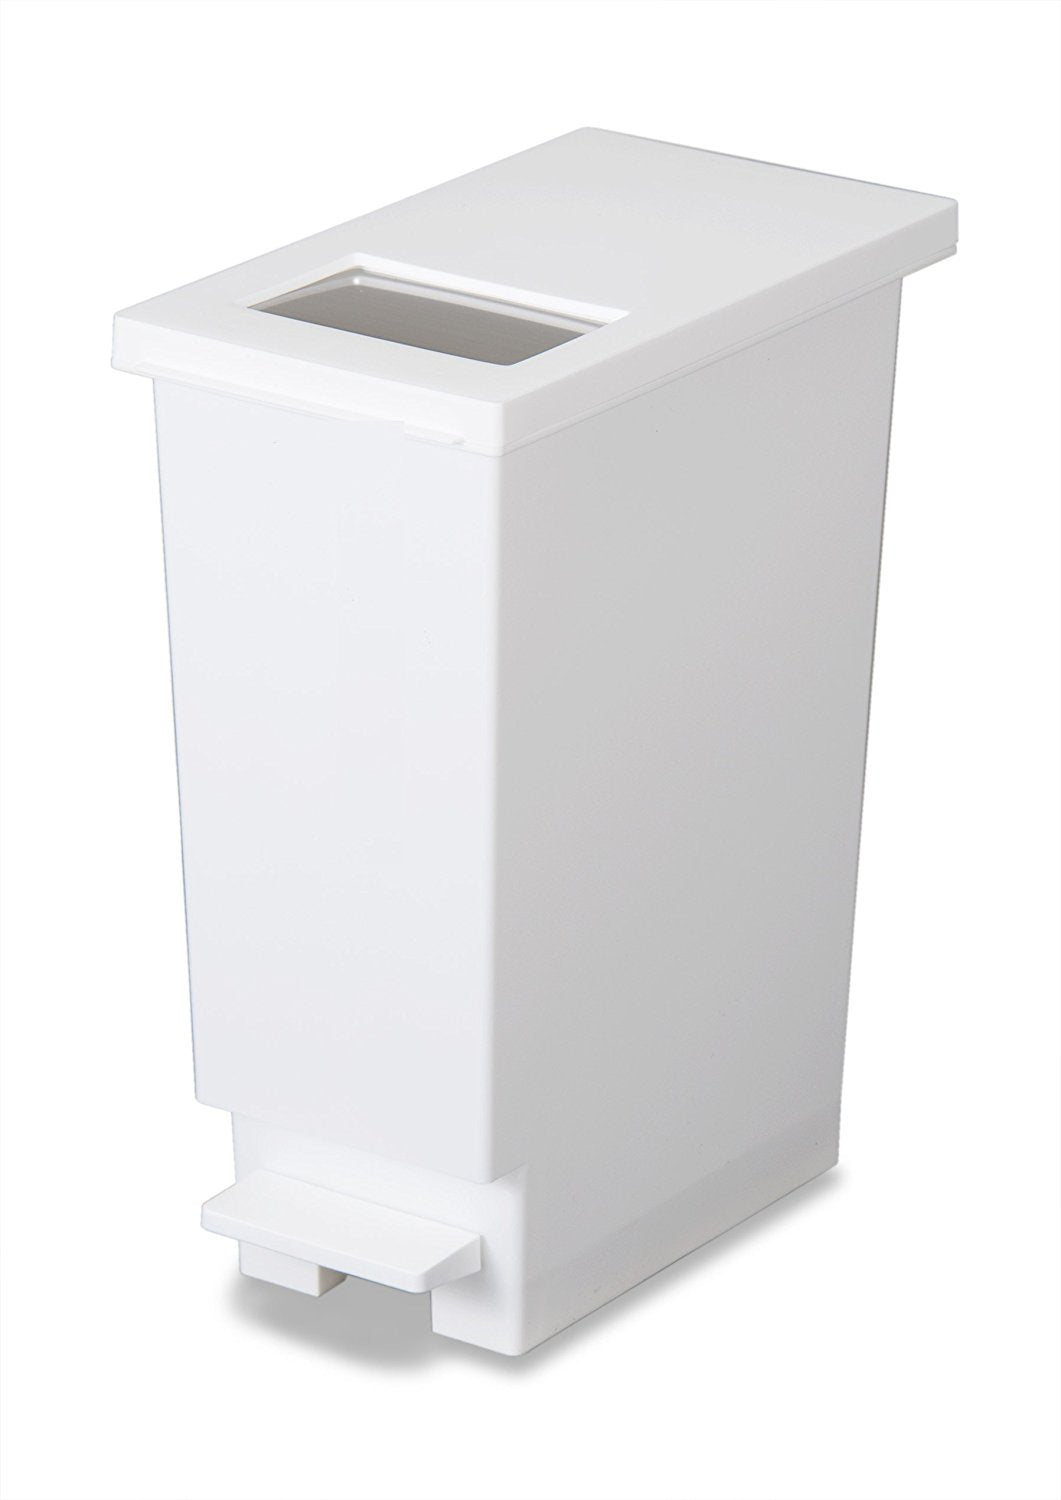 Yunido 2-way Push and Pedal Step Bin 20l - White